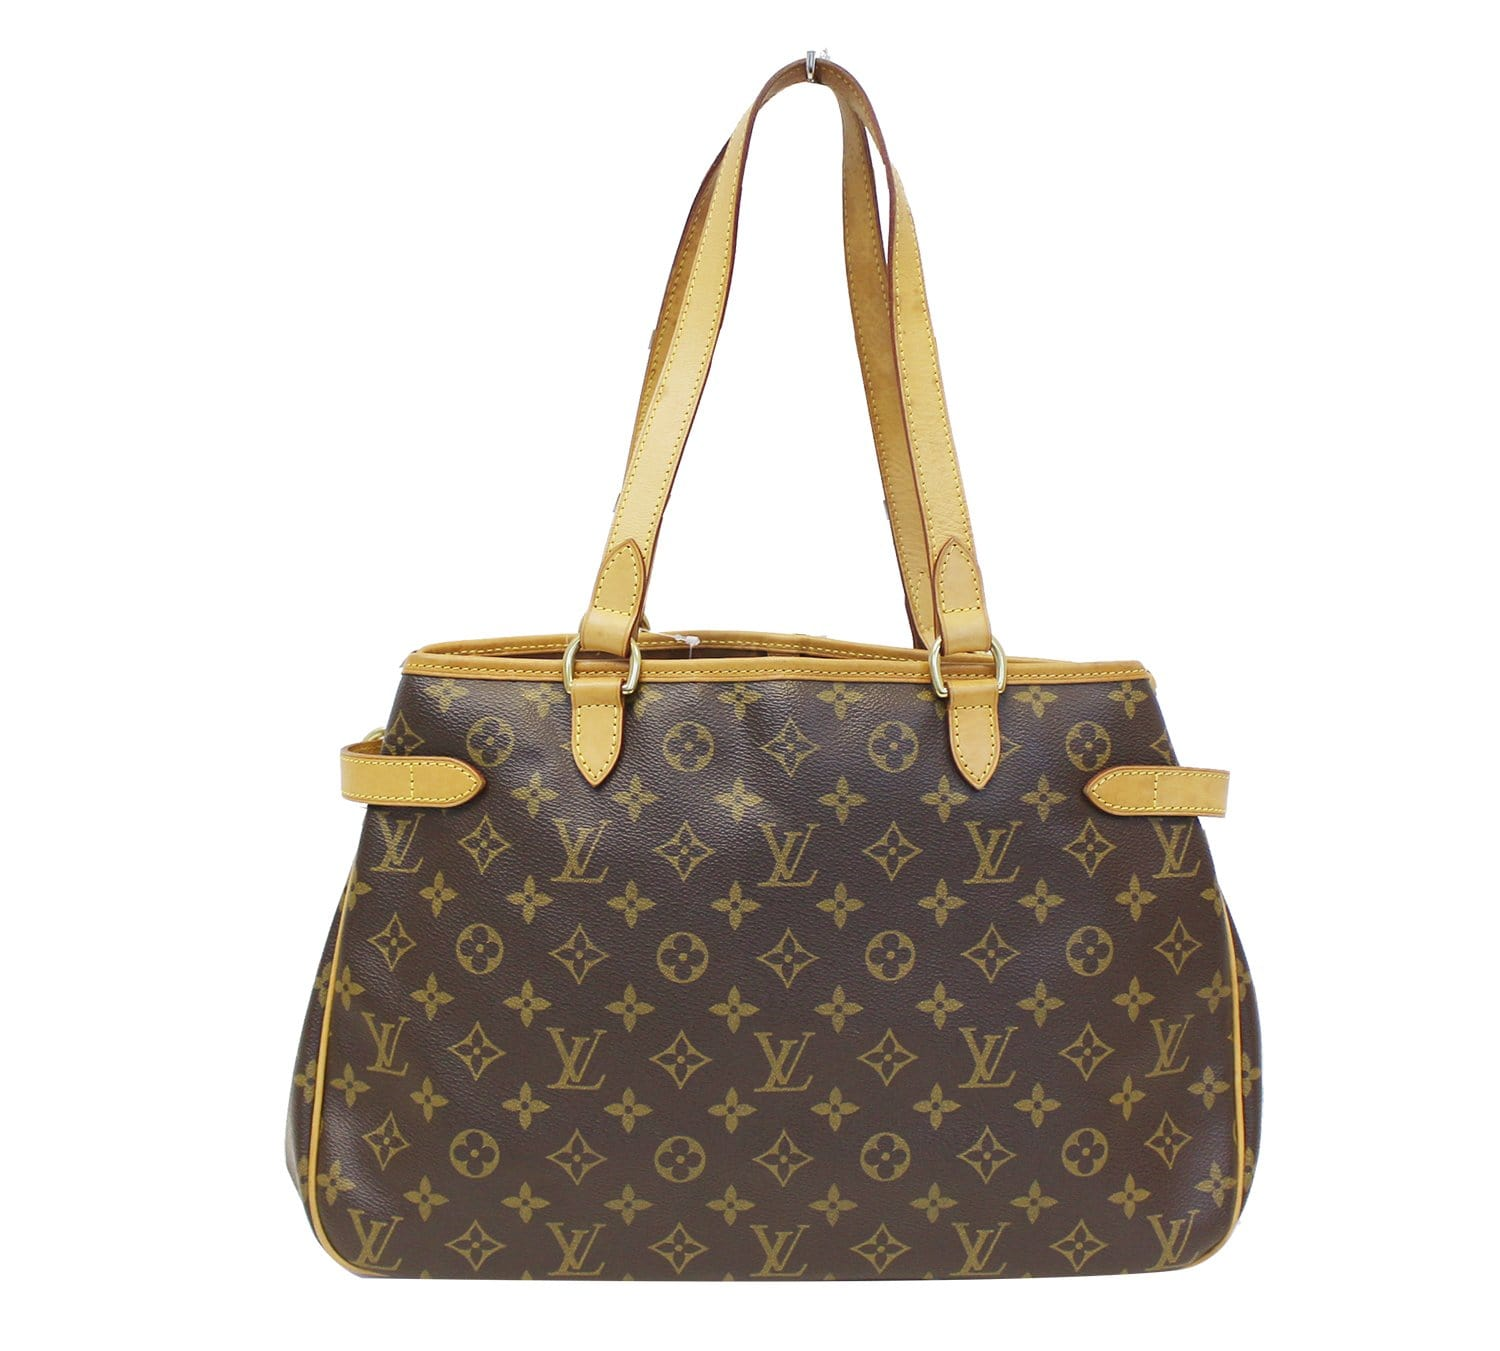 2aab04c1e901 LOUIS VUITTON Monogram Canvas Batignolles Horizontal Shoulder Tote Bag